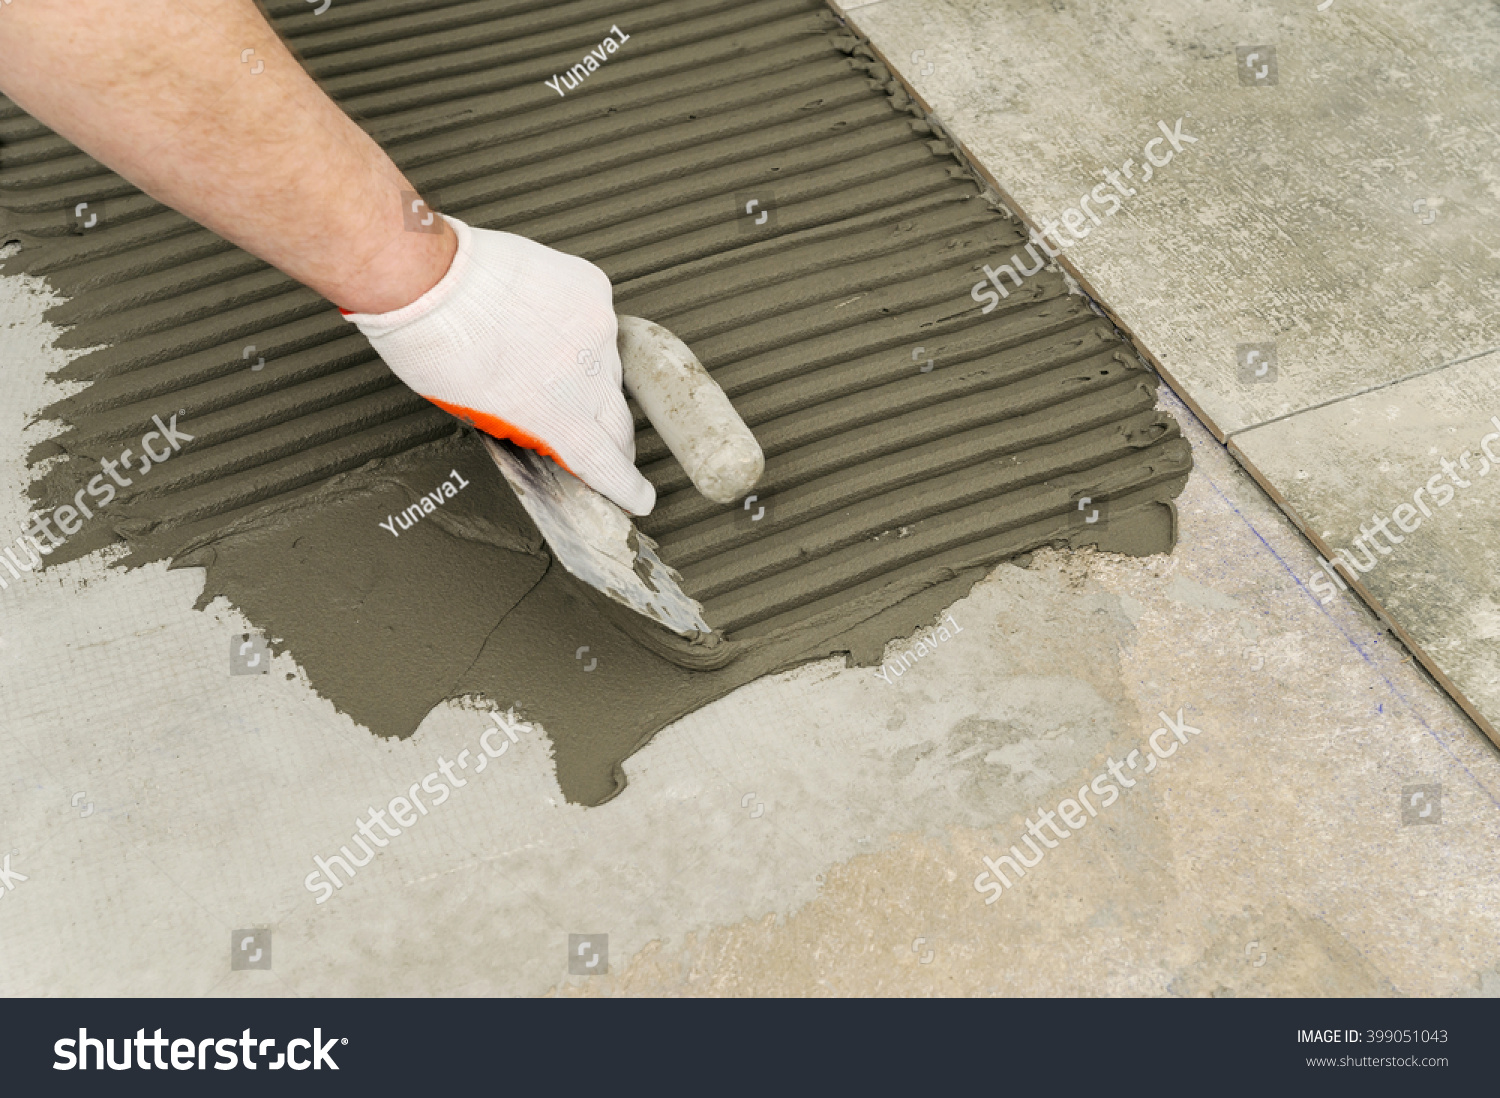 Laying Ceramic Tiles Troweling Mortar Onto Stock Photo (Download Now ...